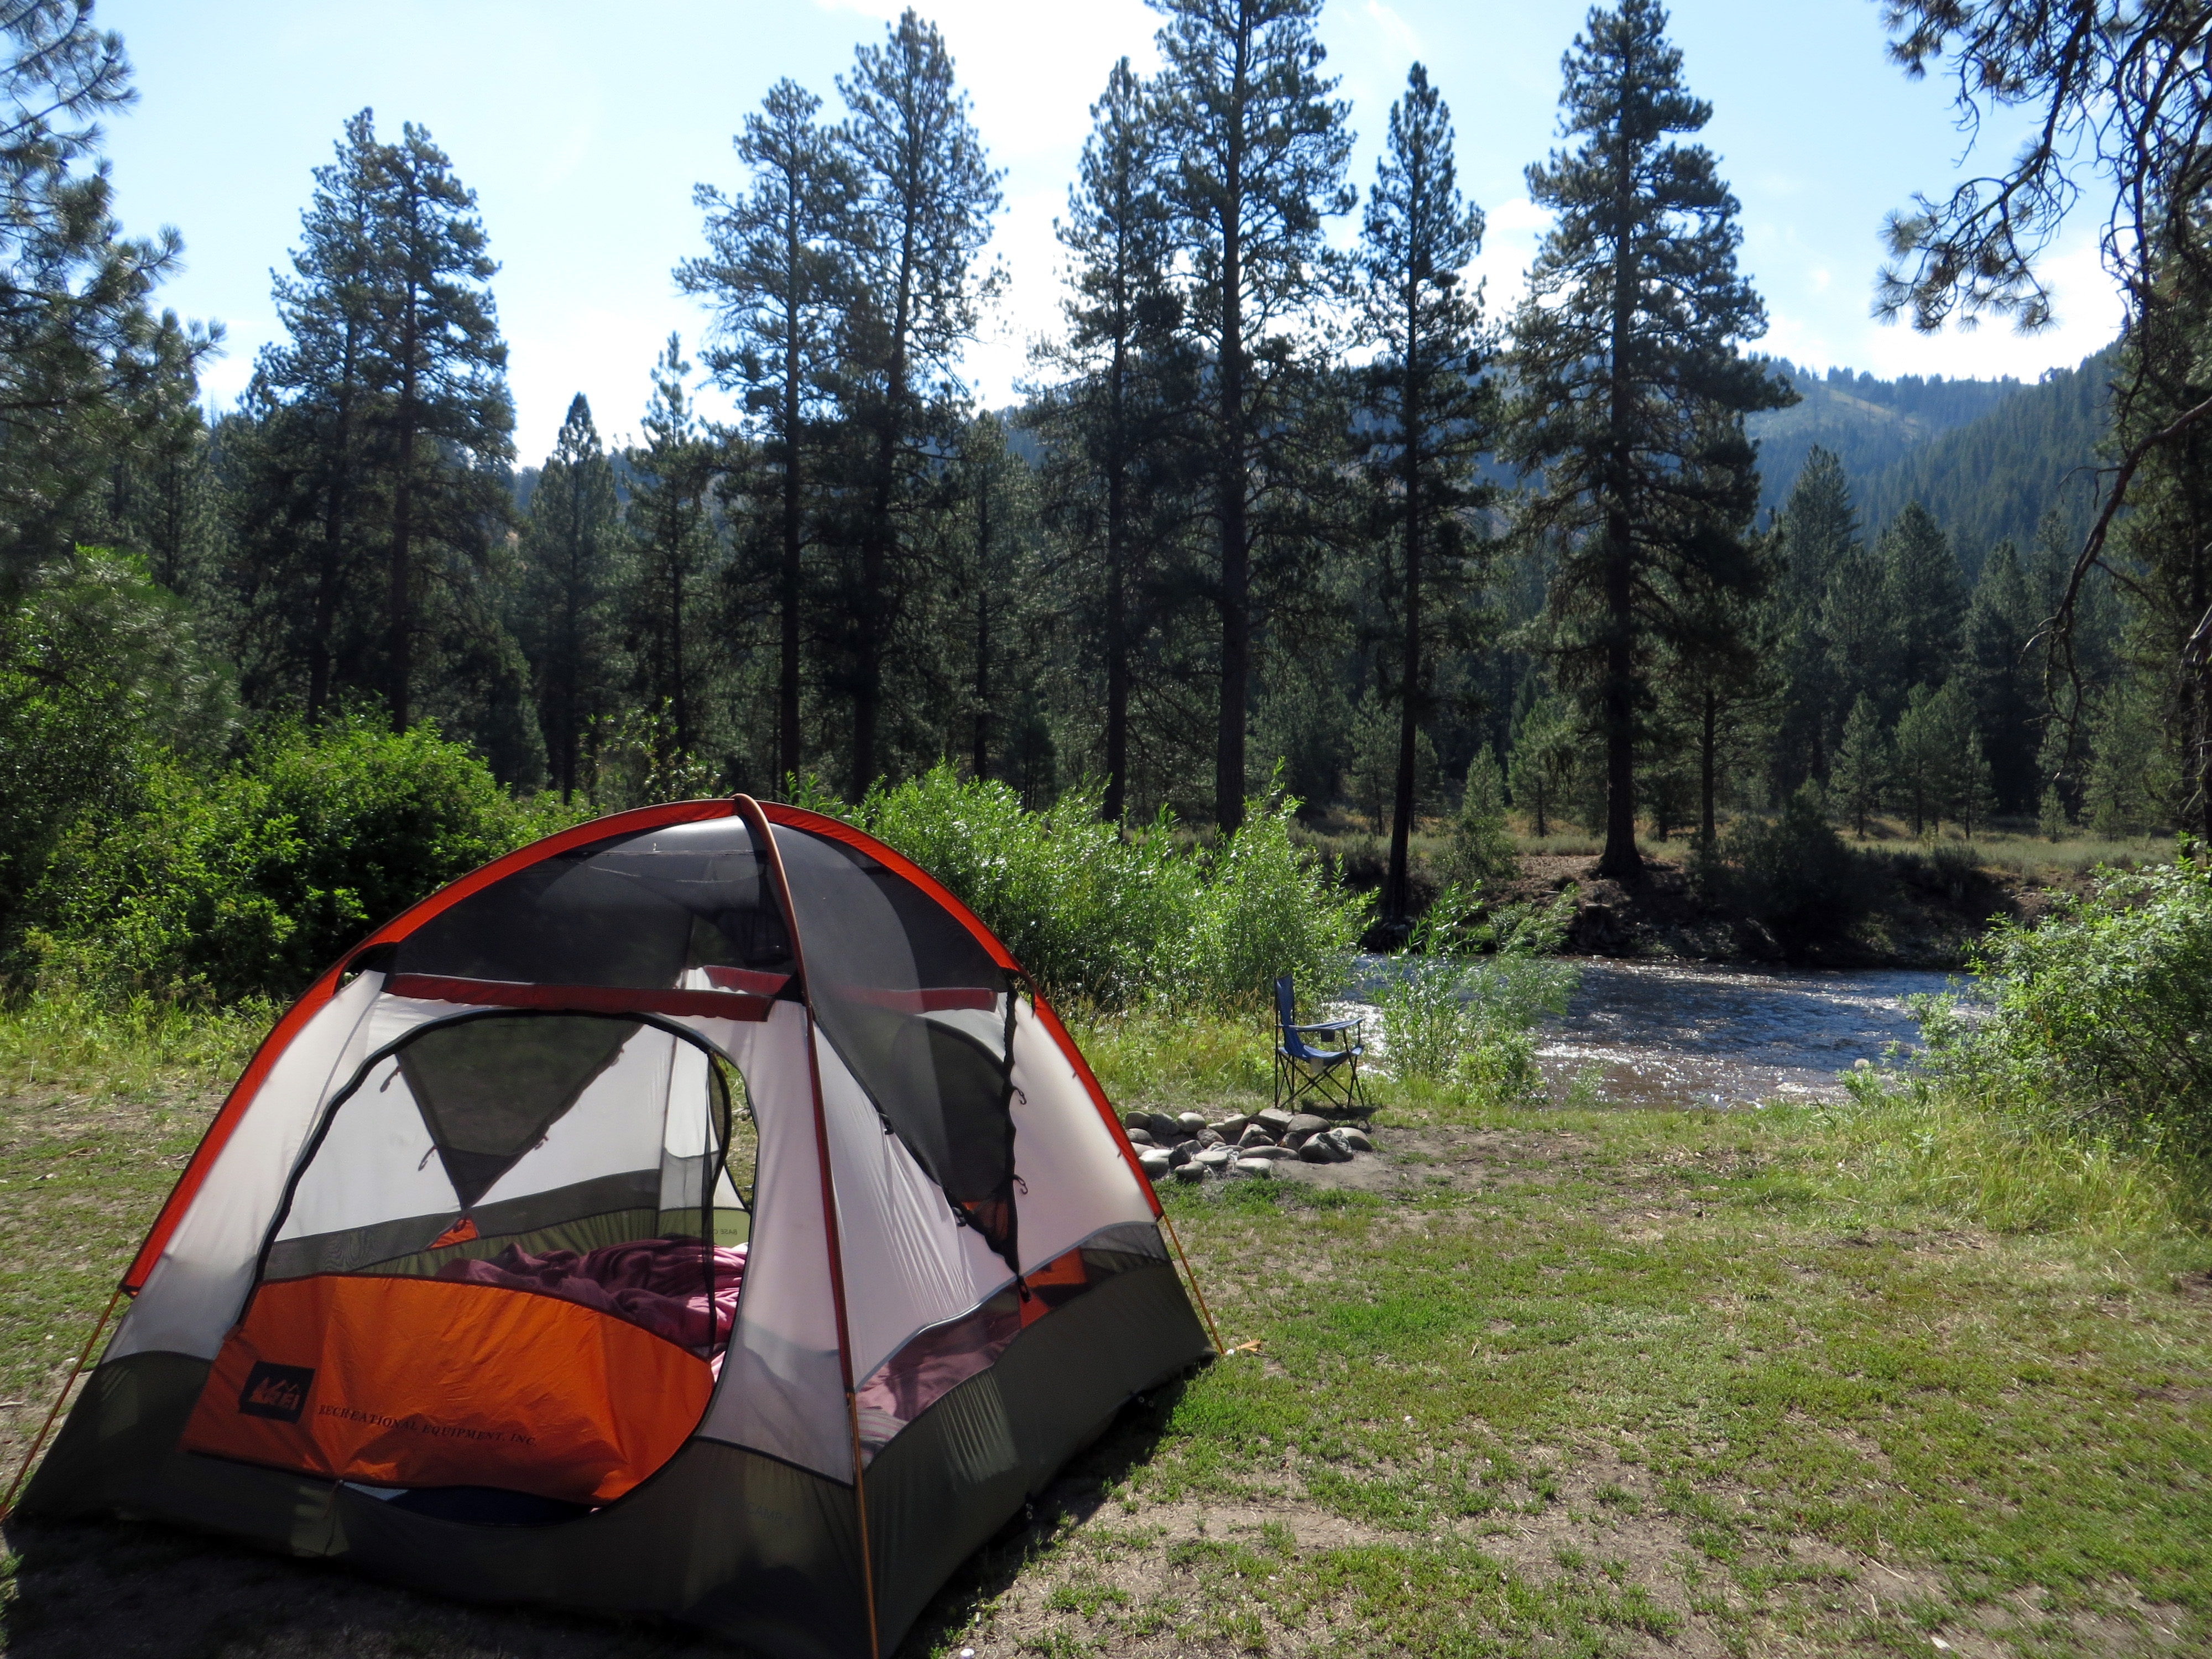 Collapsing Mountain Camp South Fork Boise River, Boise National Forest, ID July 30 (photo by D. Speredelozzi)